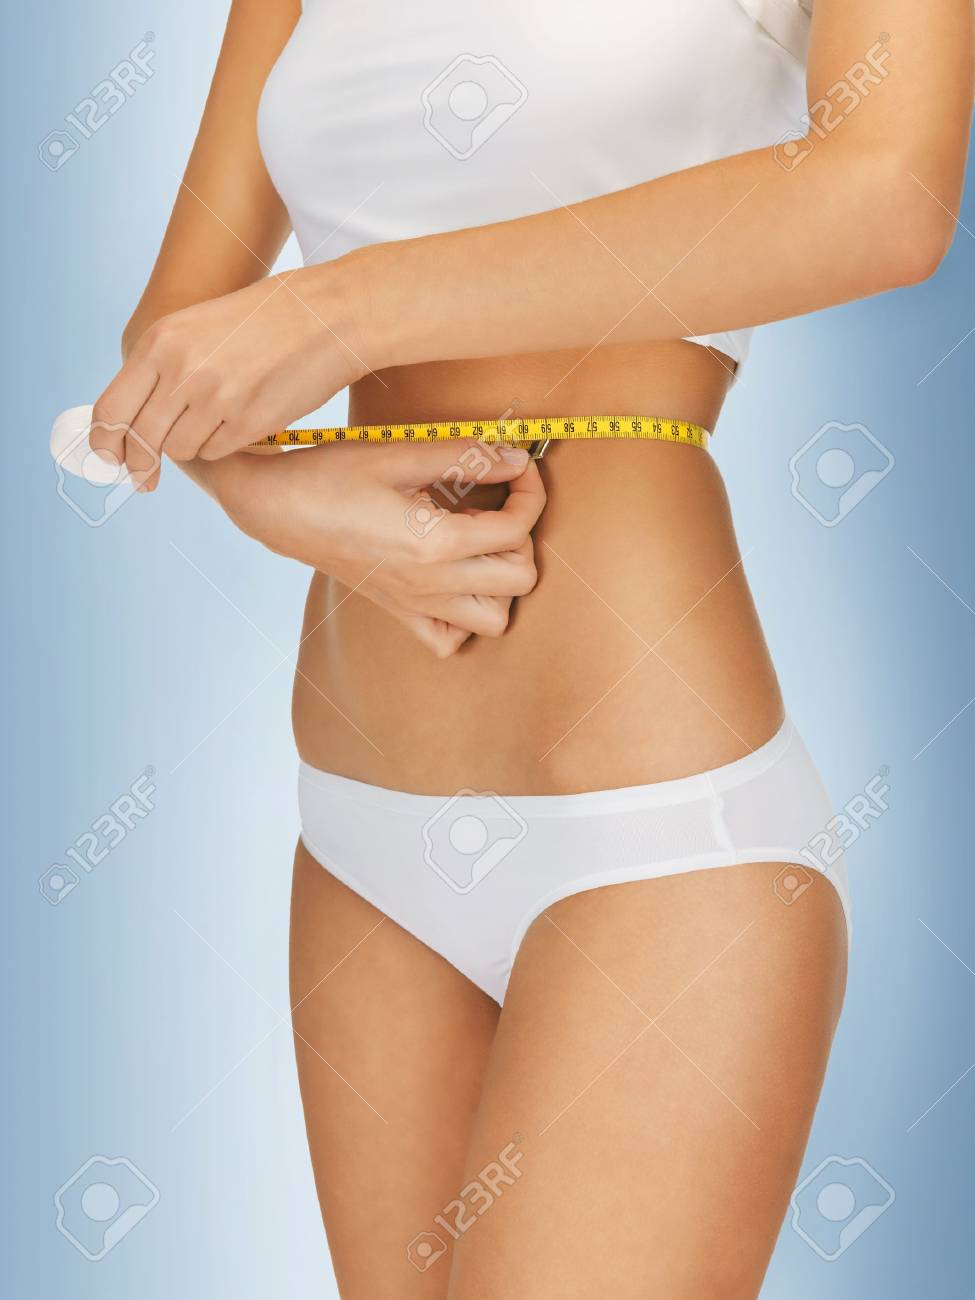 closeup picture of woman with measure tape Stock Photo - 16442124